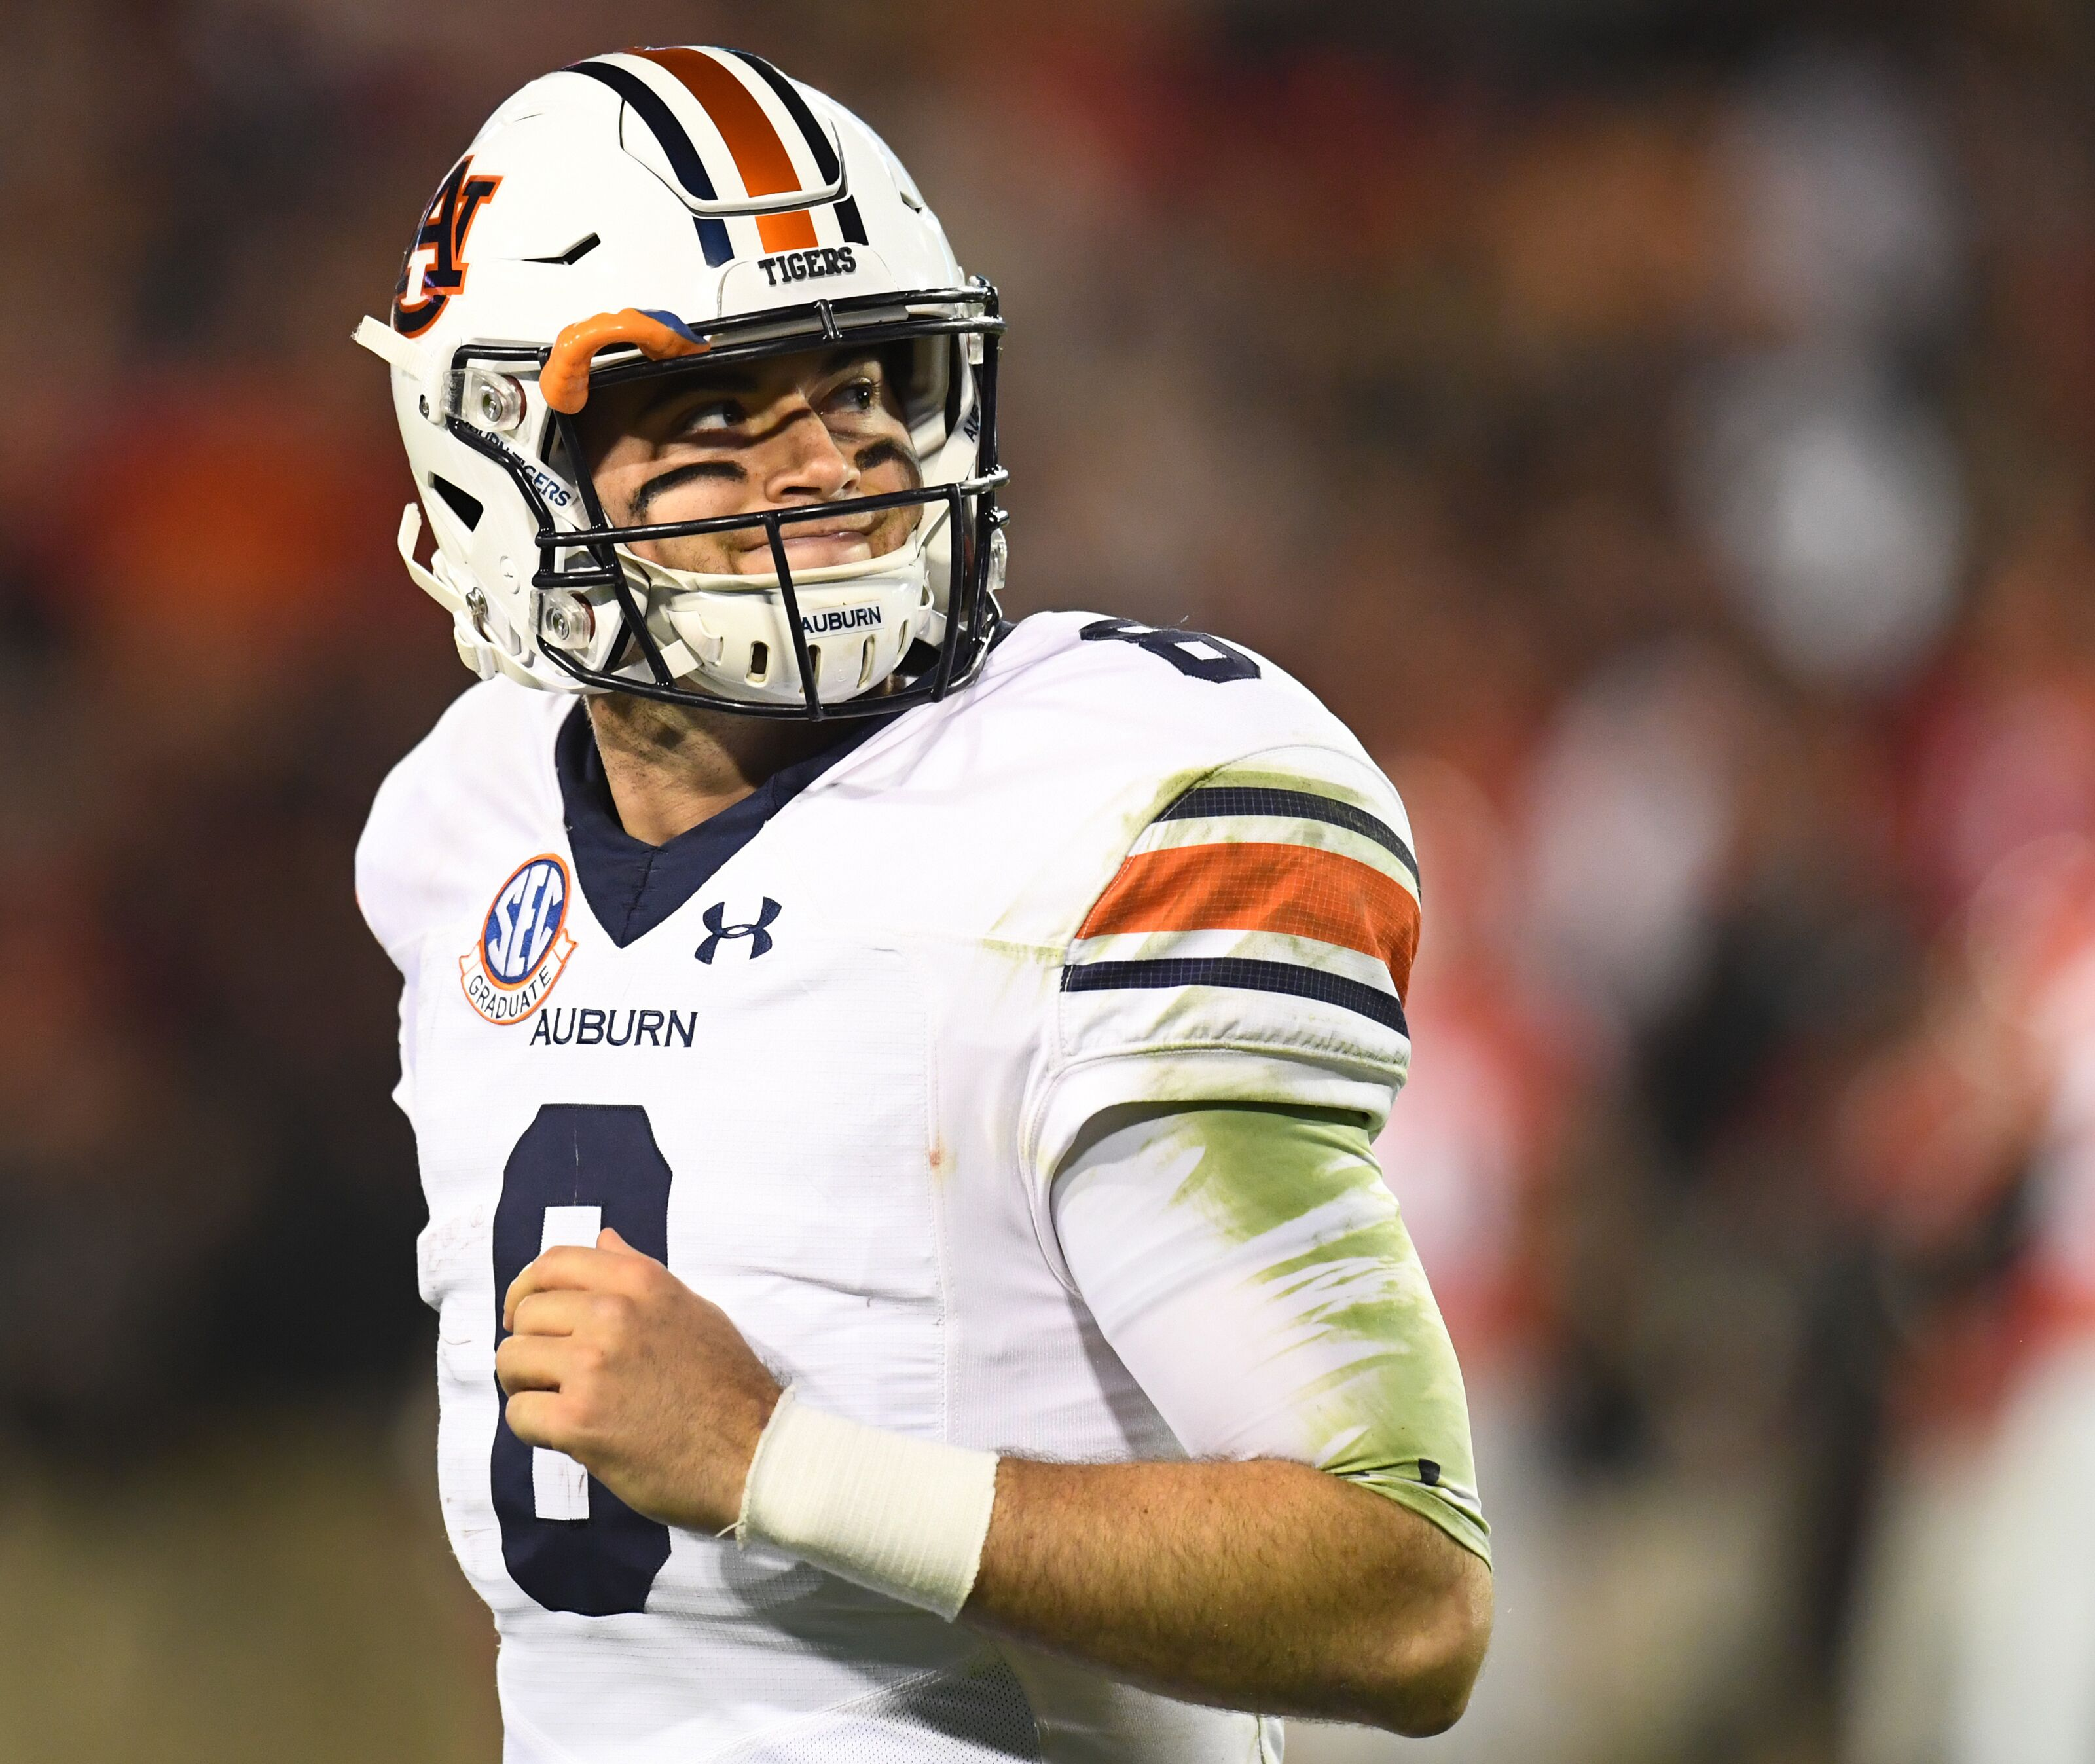 Cleveland Browns need a rookie quarterback in 2019